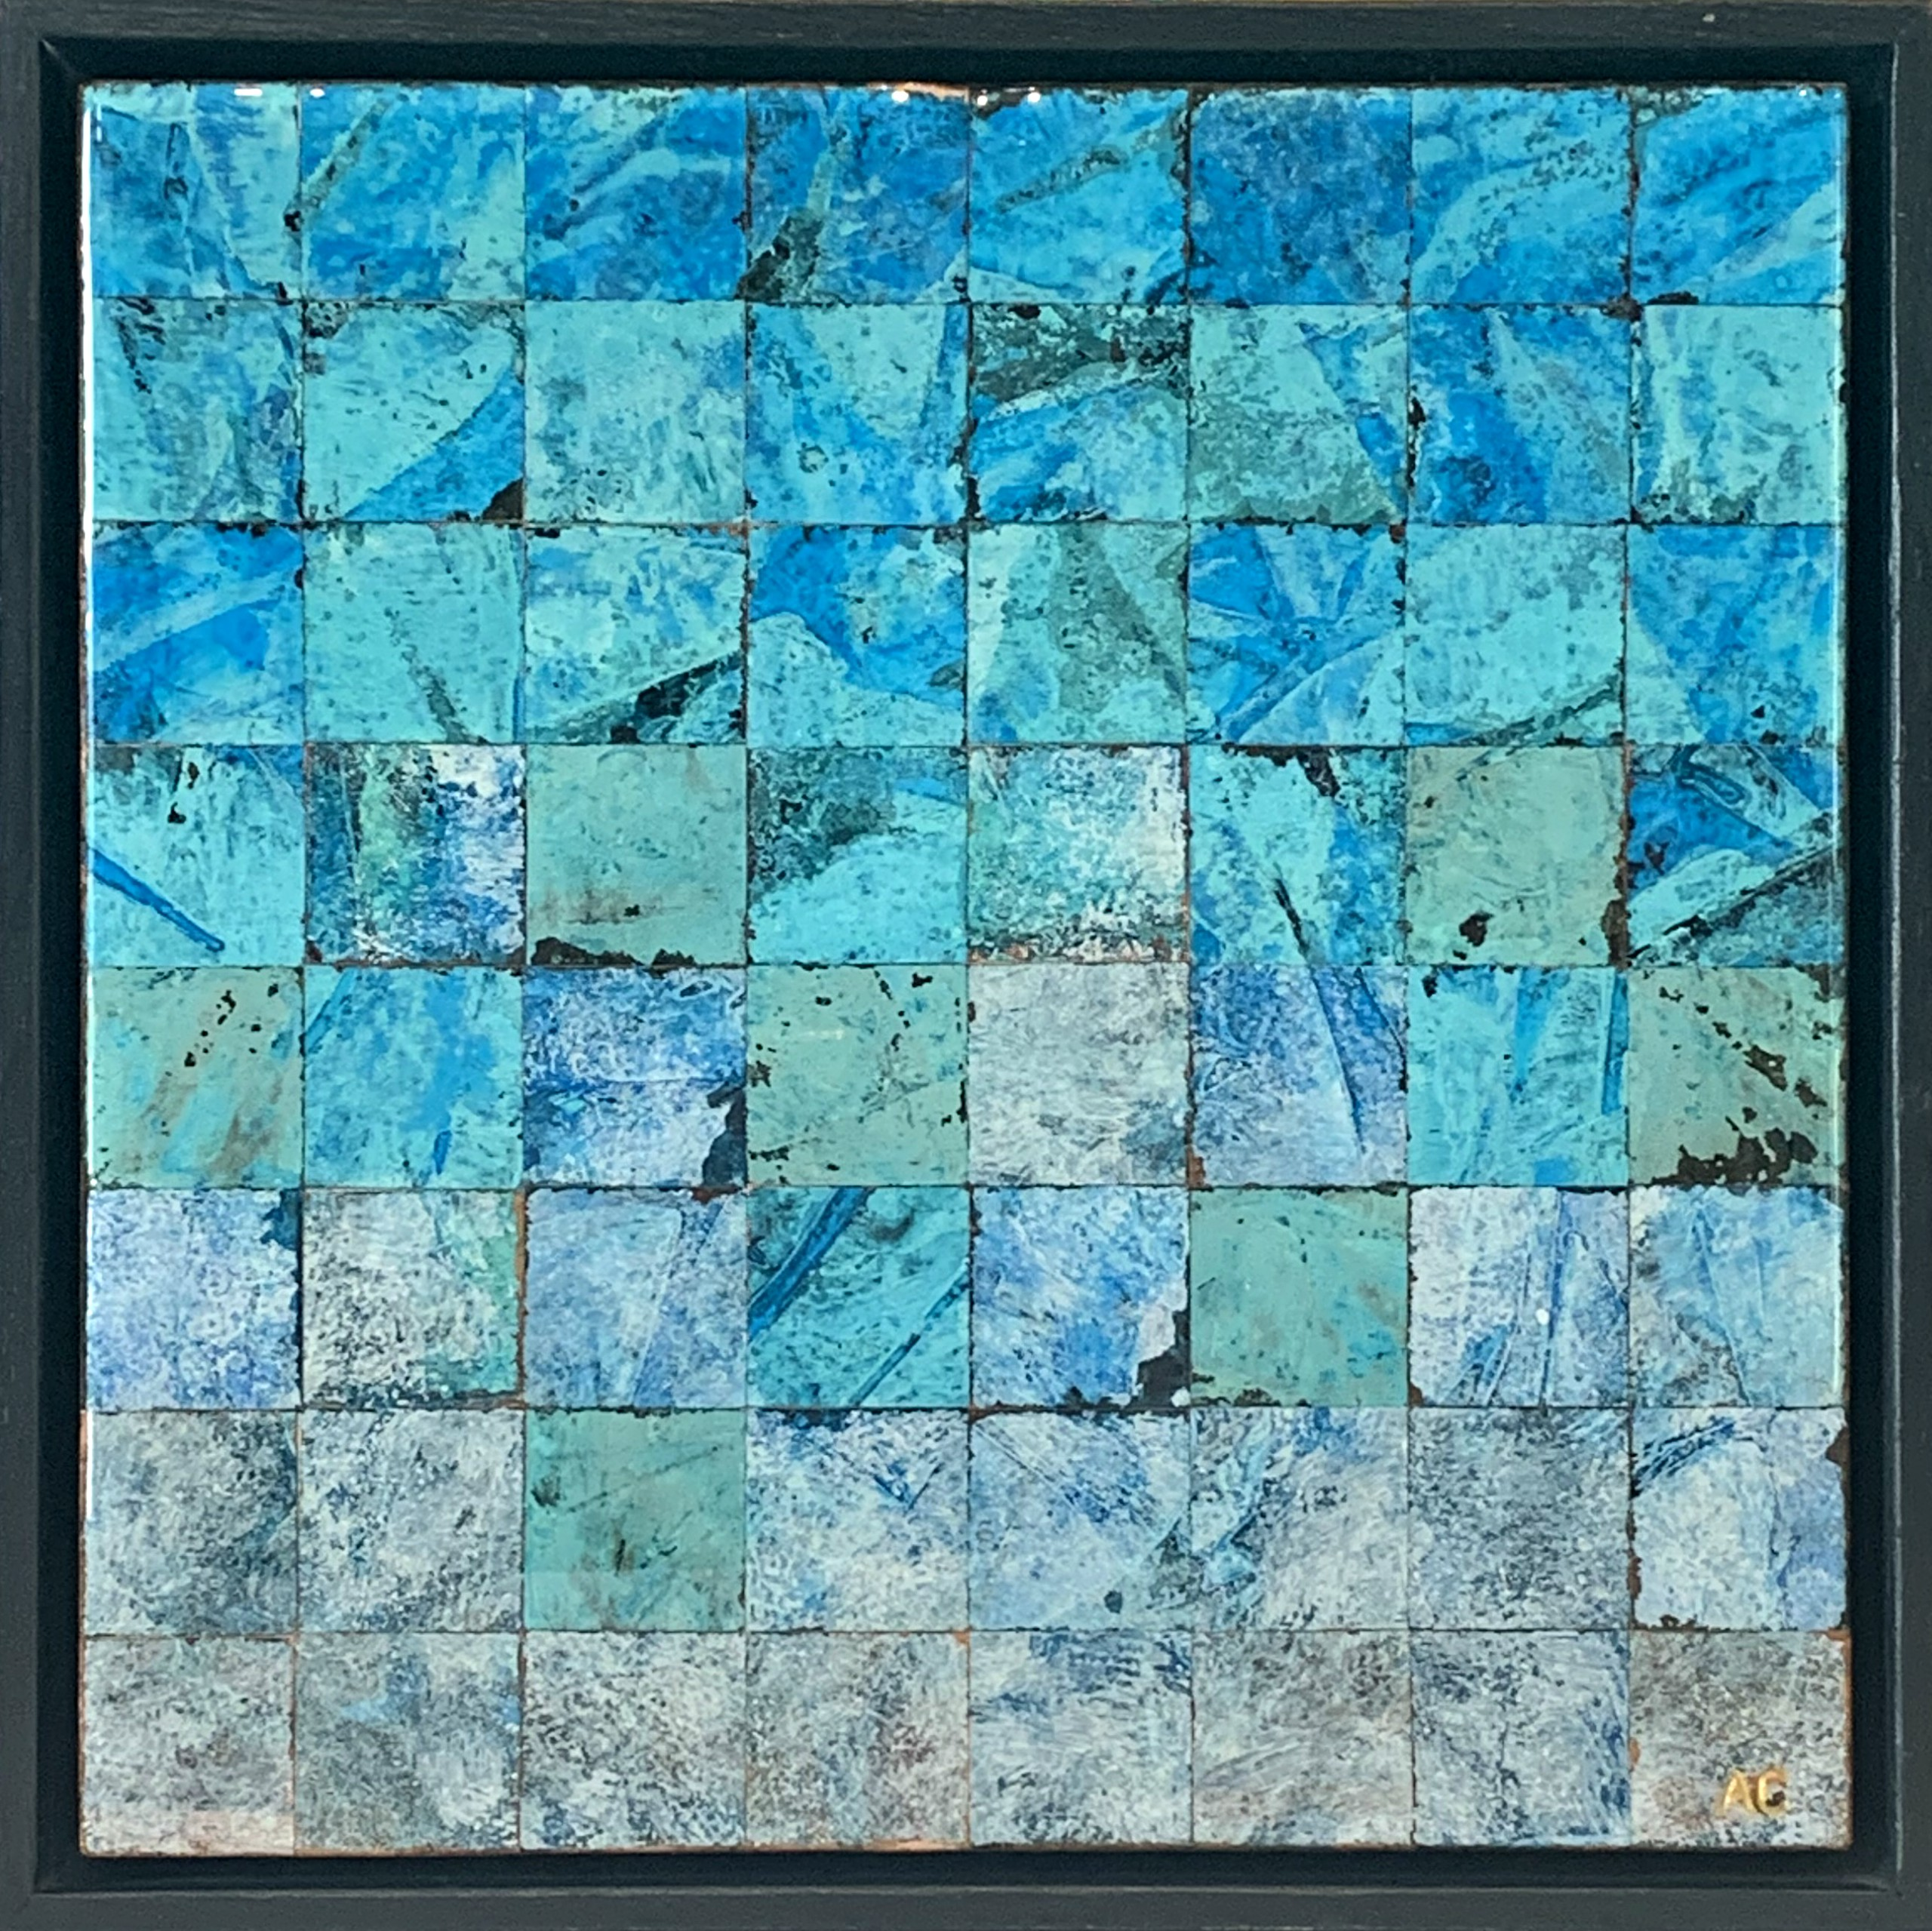 Square Foot Art #1, copper painting by Adam Colangelo | Effusion Art Gallery + Cast Glass Studio, Invermere BC